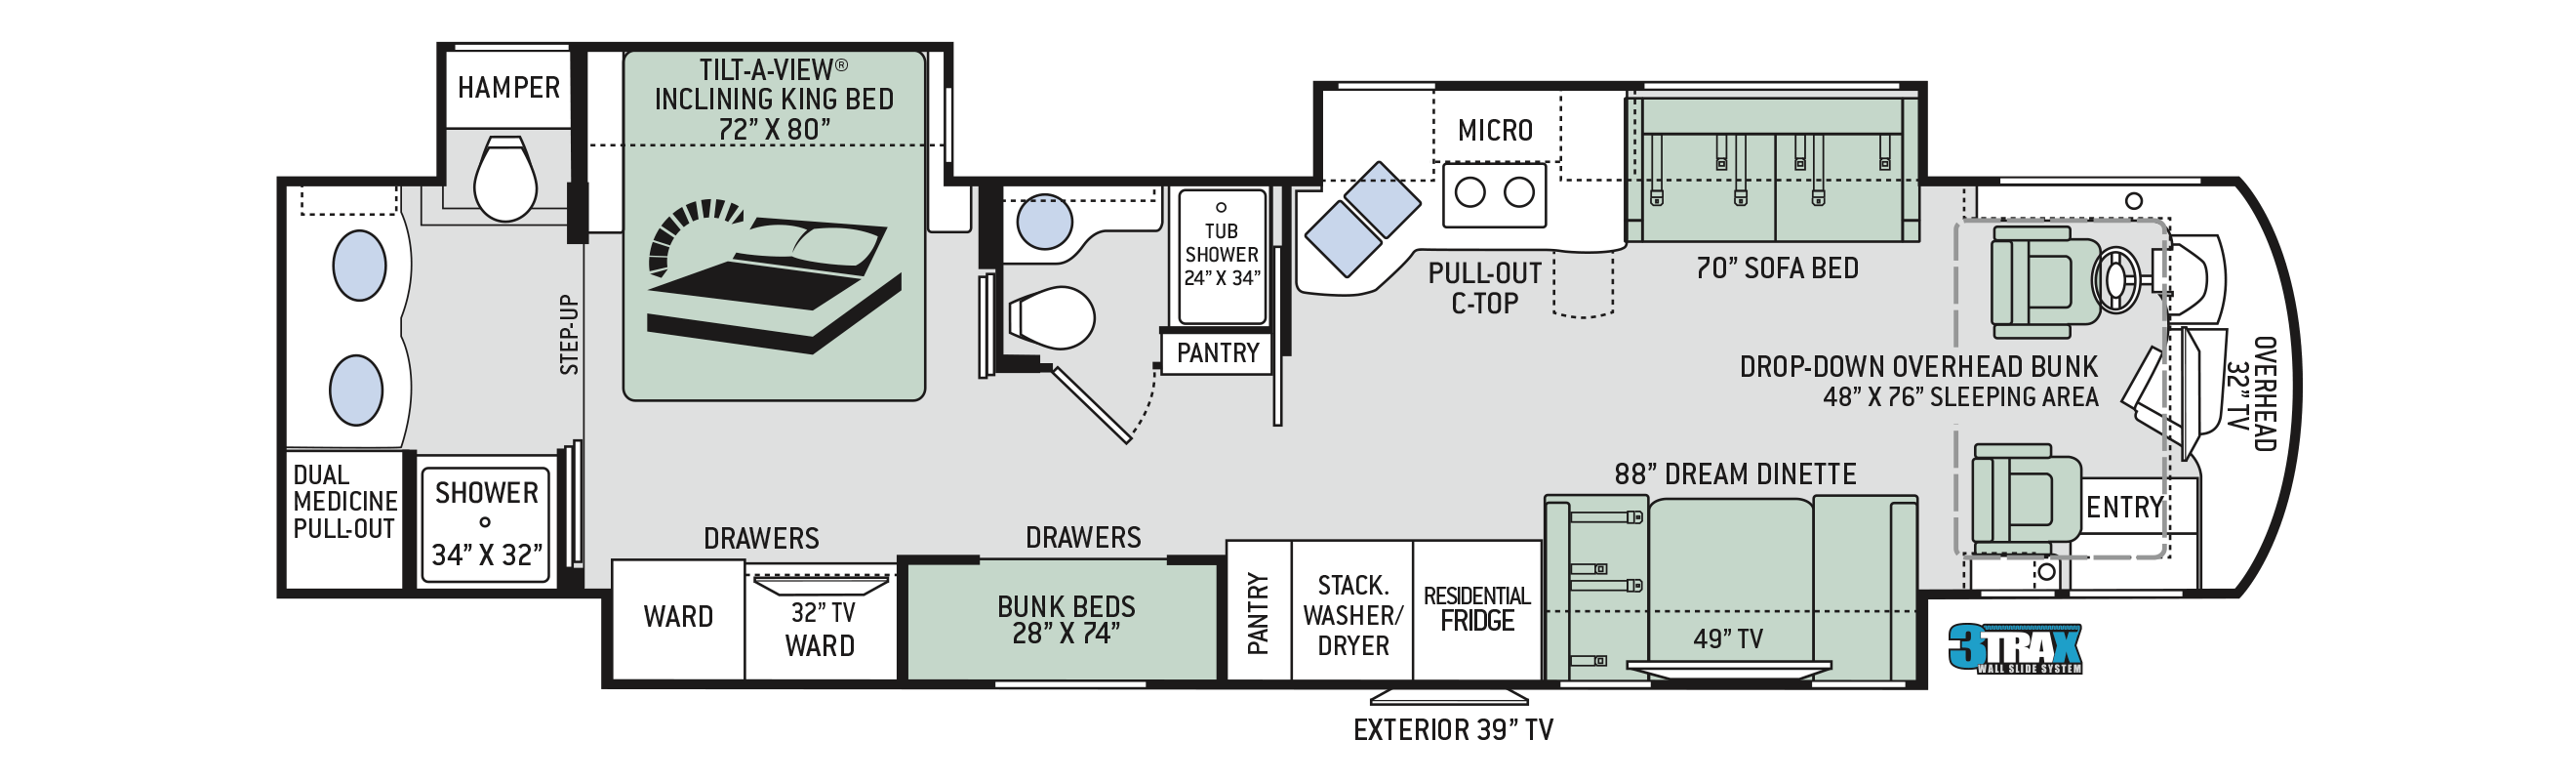 2019 Thor Aria 4000 Floor Plan